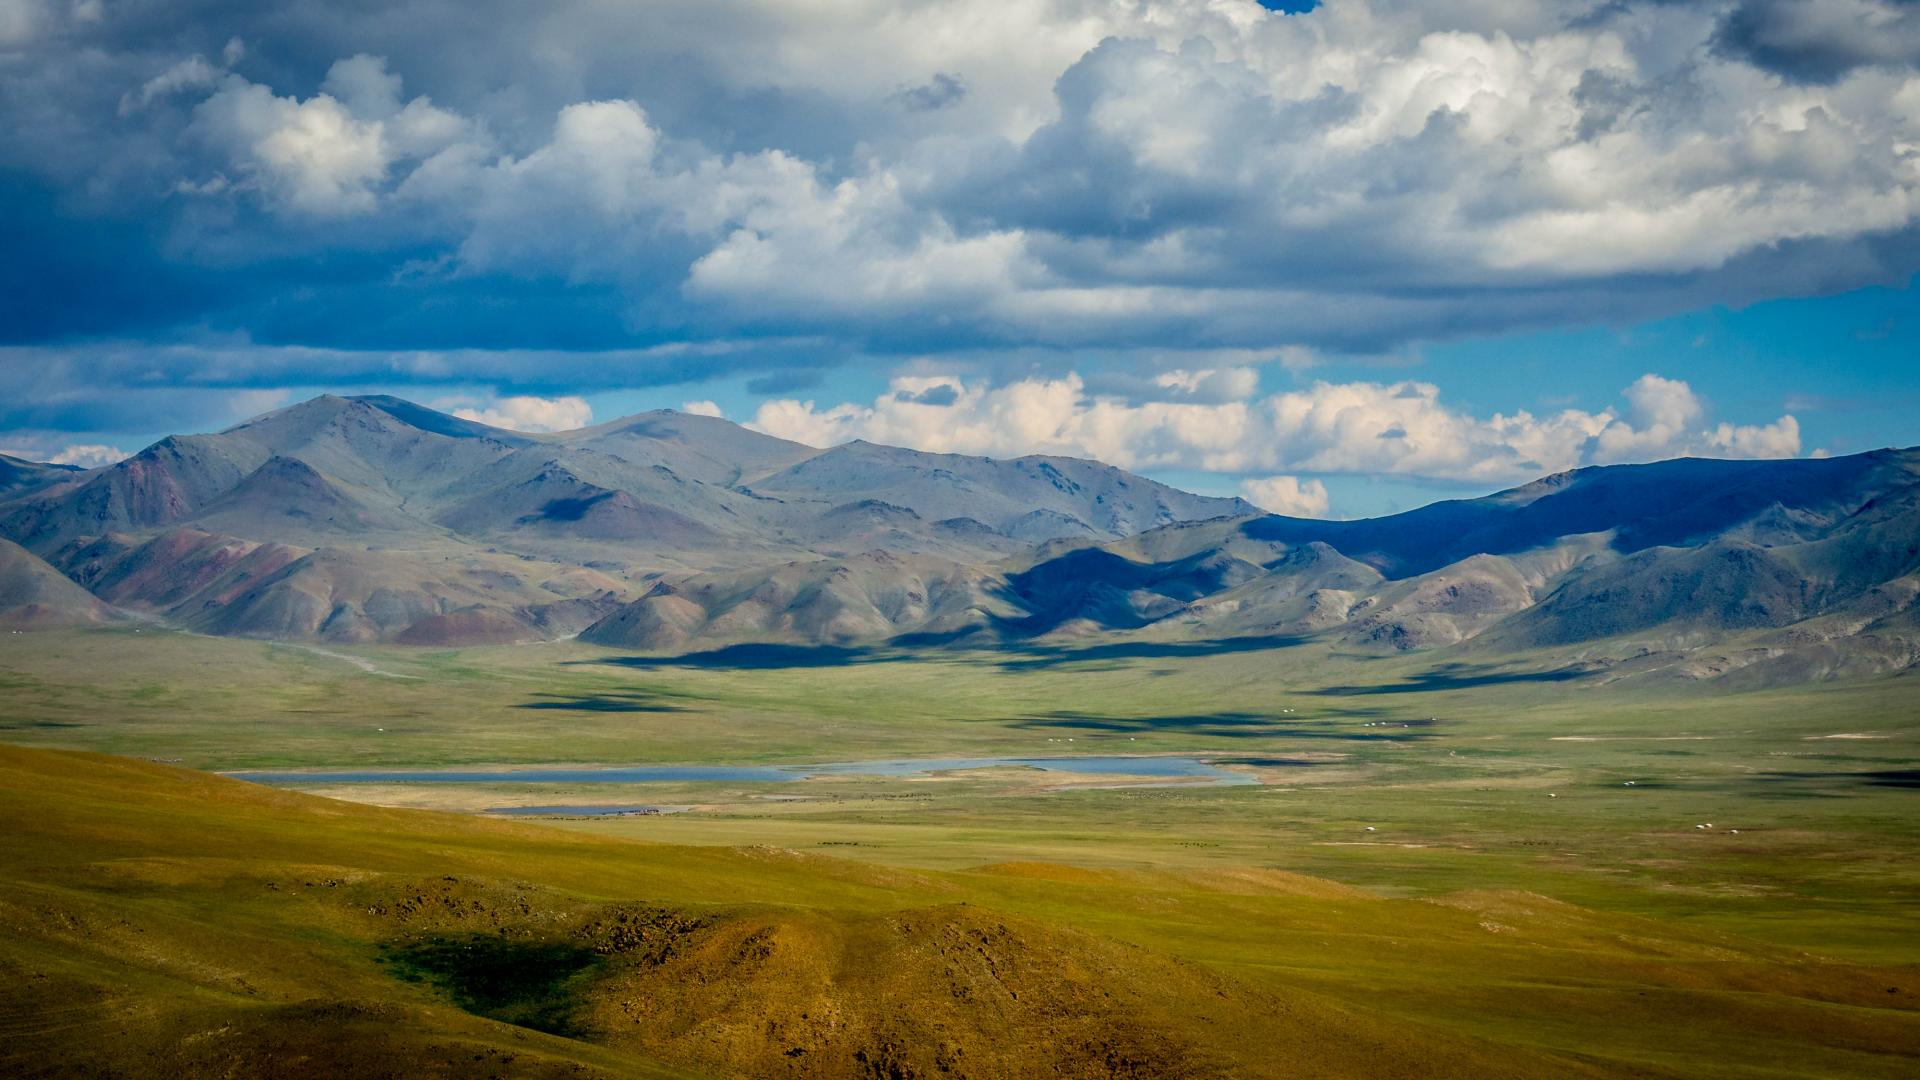 Mongolie6